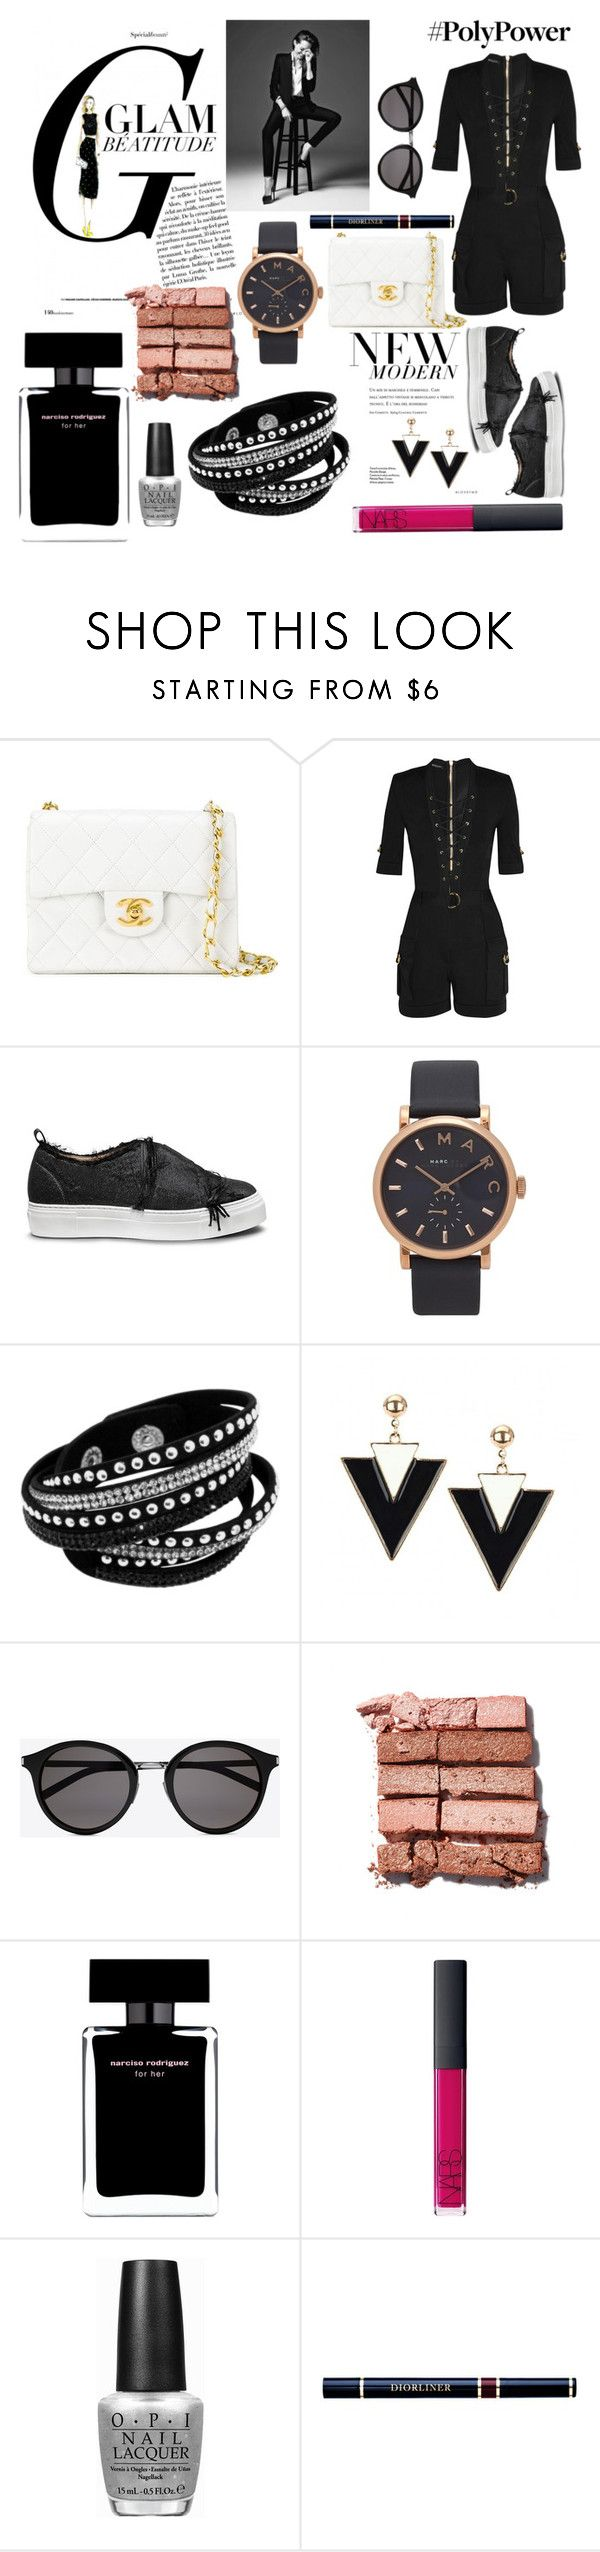 """Blacktitude Power"" by blackheaven on Polyvore featuring Chanel, Balmain, Calvin Klein, Marc Jacobs, Yves Saint Laurent, Bobbi Brown Cosmetics, Narciso Rodriguez, NARS Cosmetics, OPI and Christian Dior"